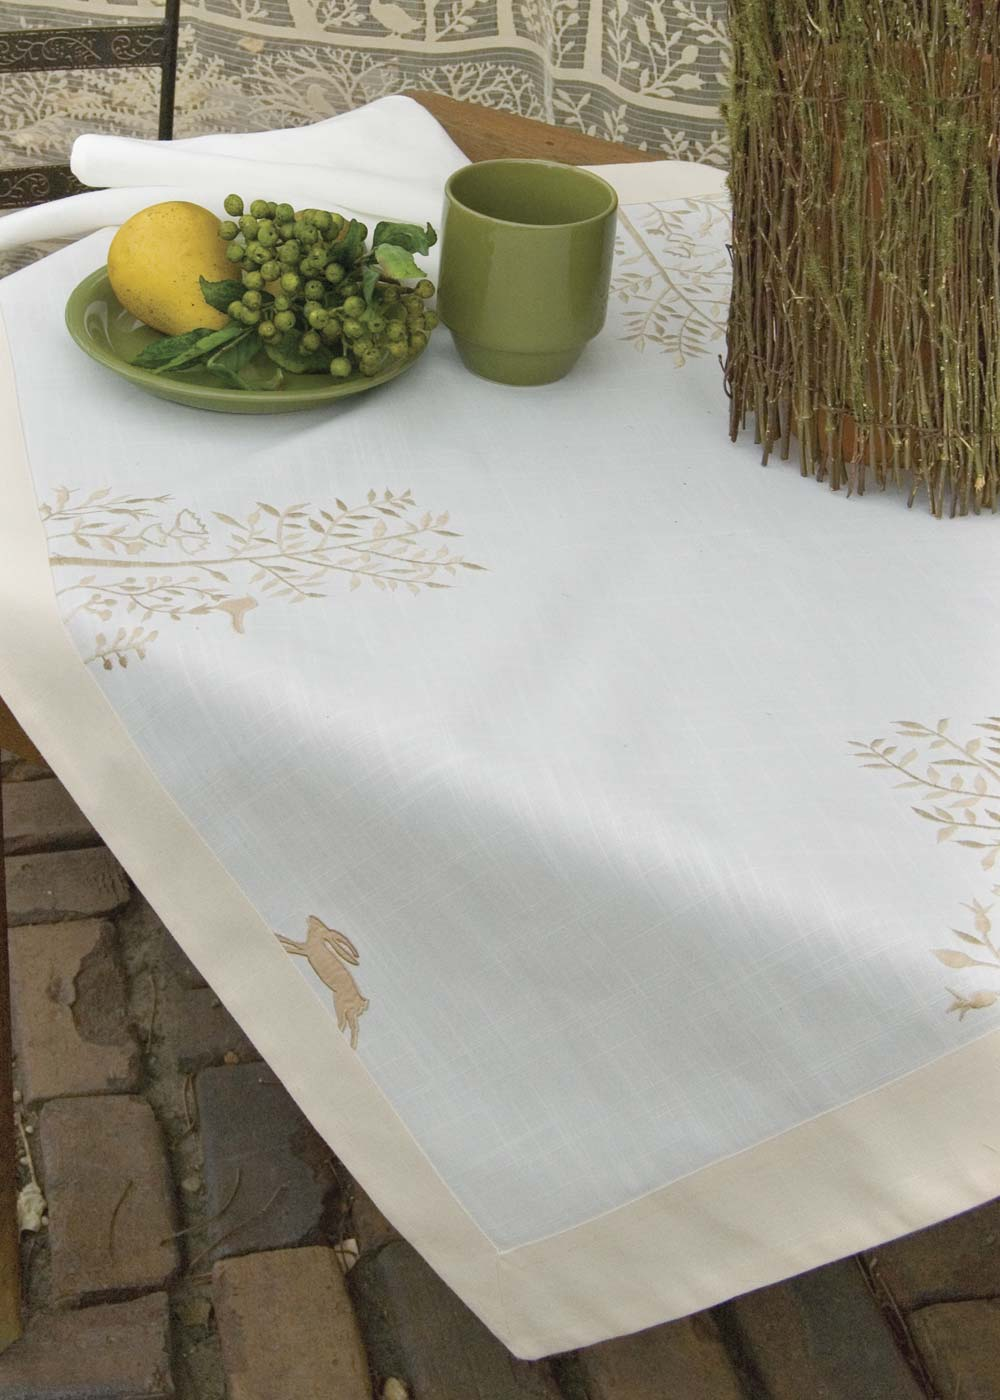 Table Linen-Tablecloth-Table Topper-36x36-Heritage Lace-Rabbit Hollow